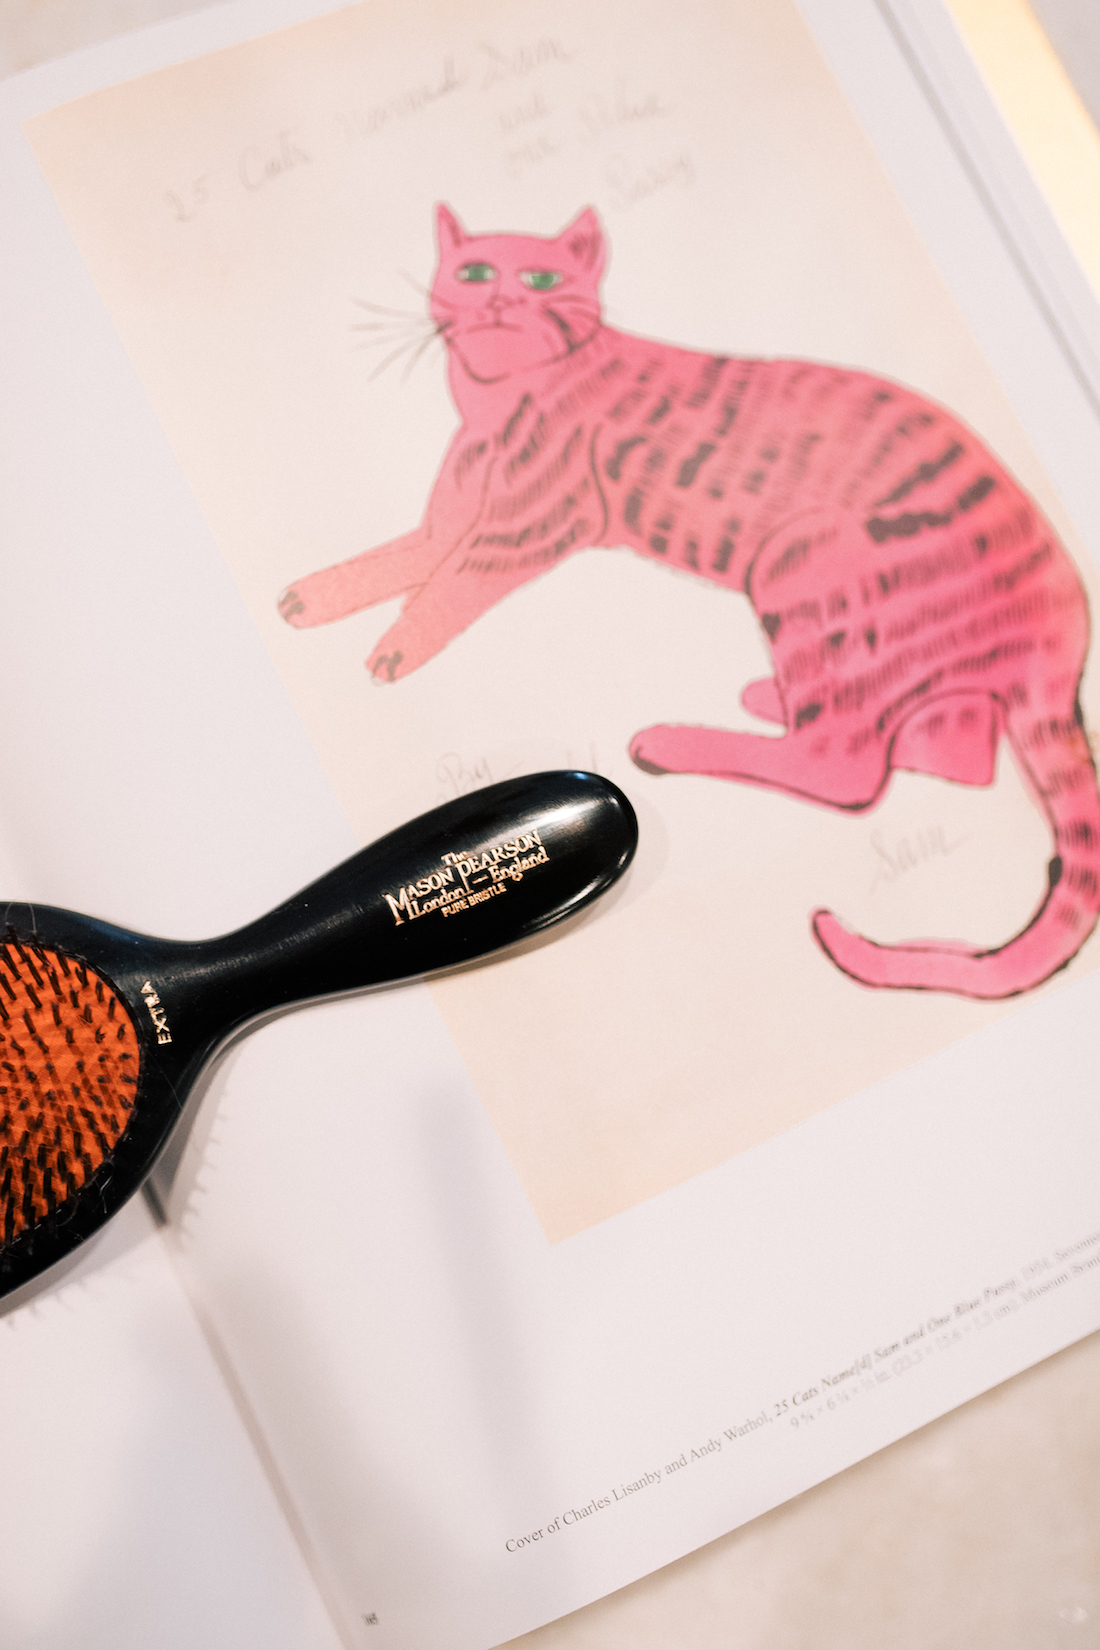 Mason Pearson Hairbrush review.